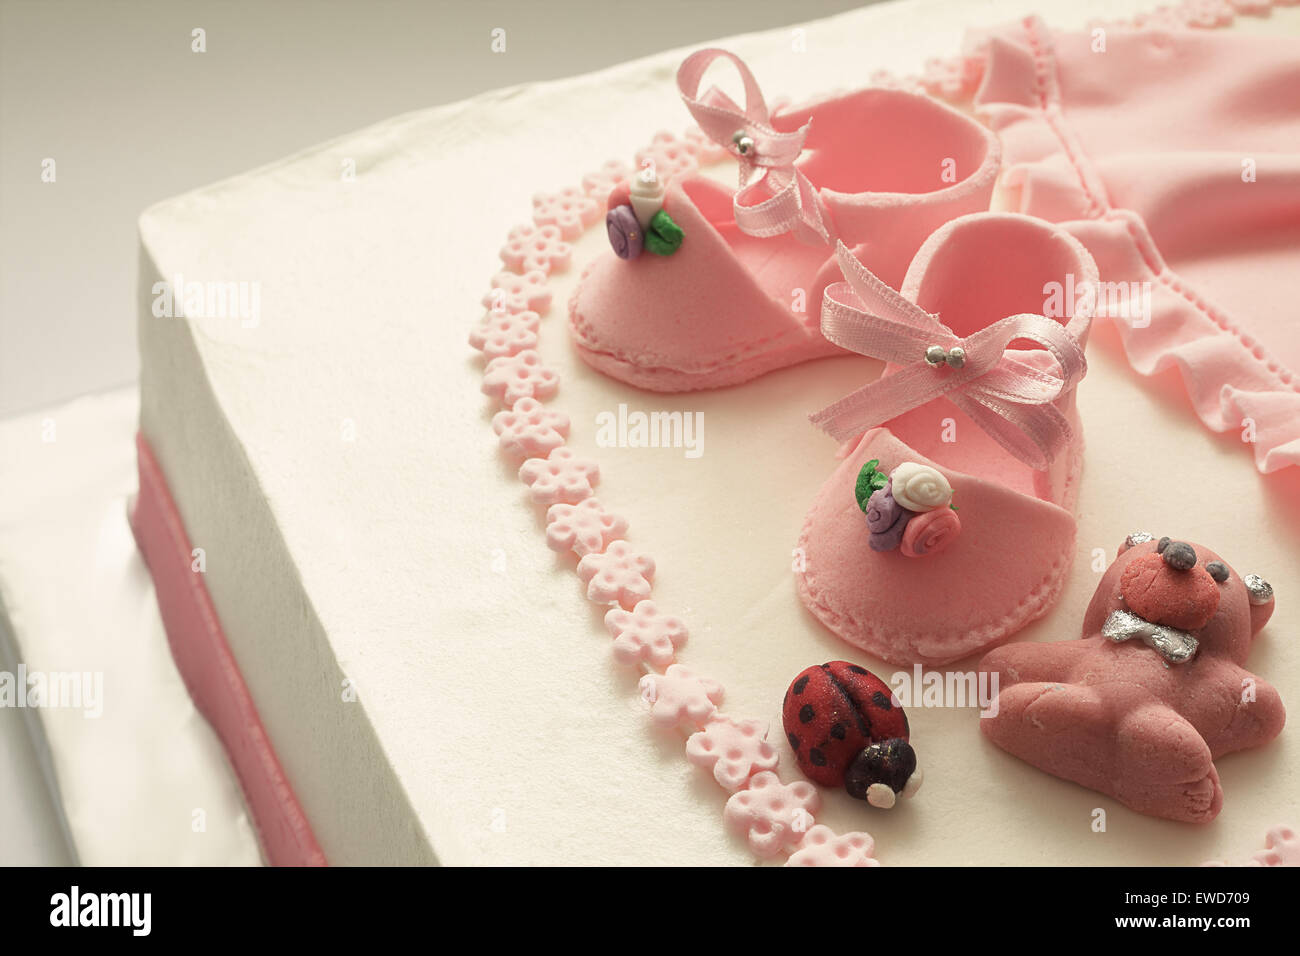 Birthday Cakes For Baby Girl ~ Details of a decoration of birthday cake for little baby girl. shoes